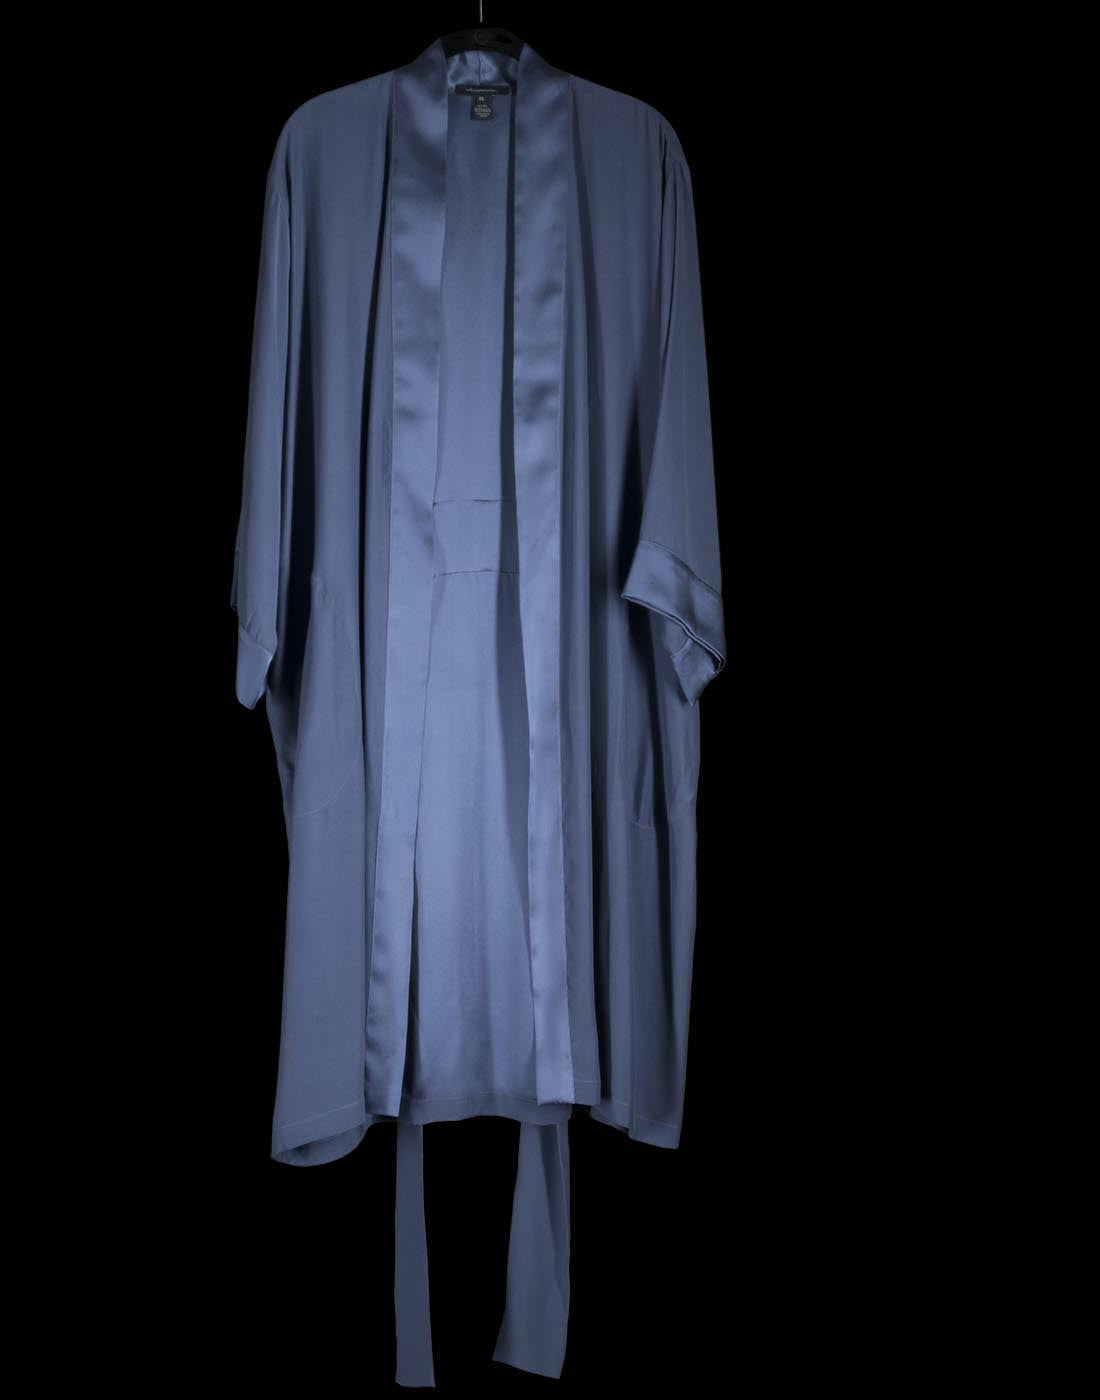 Mens Smoking Robe